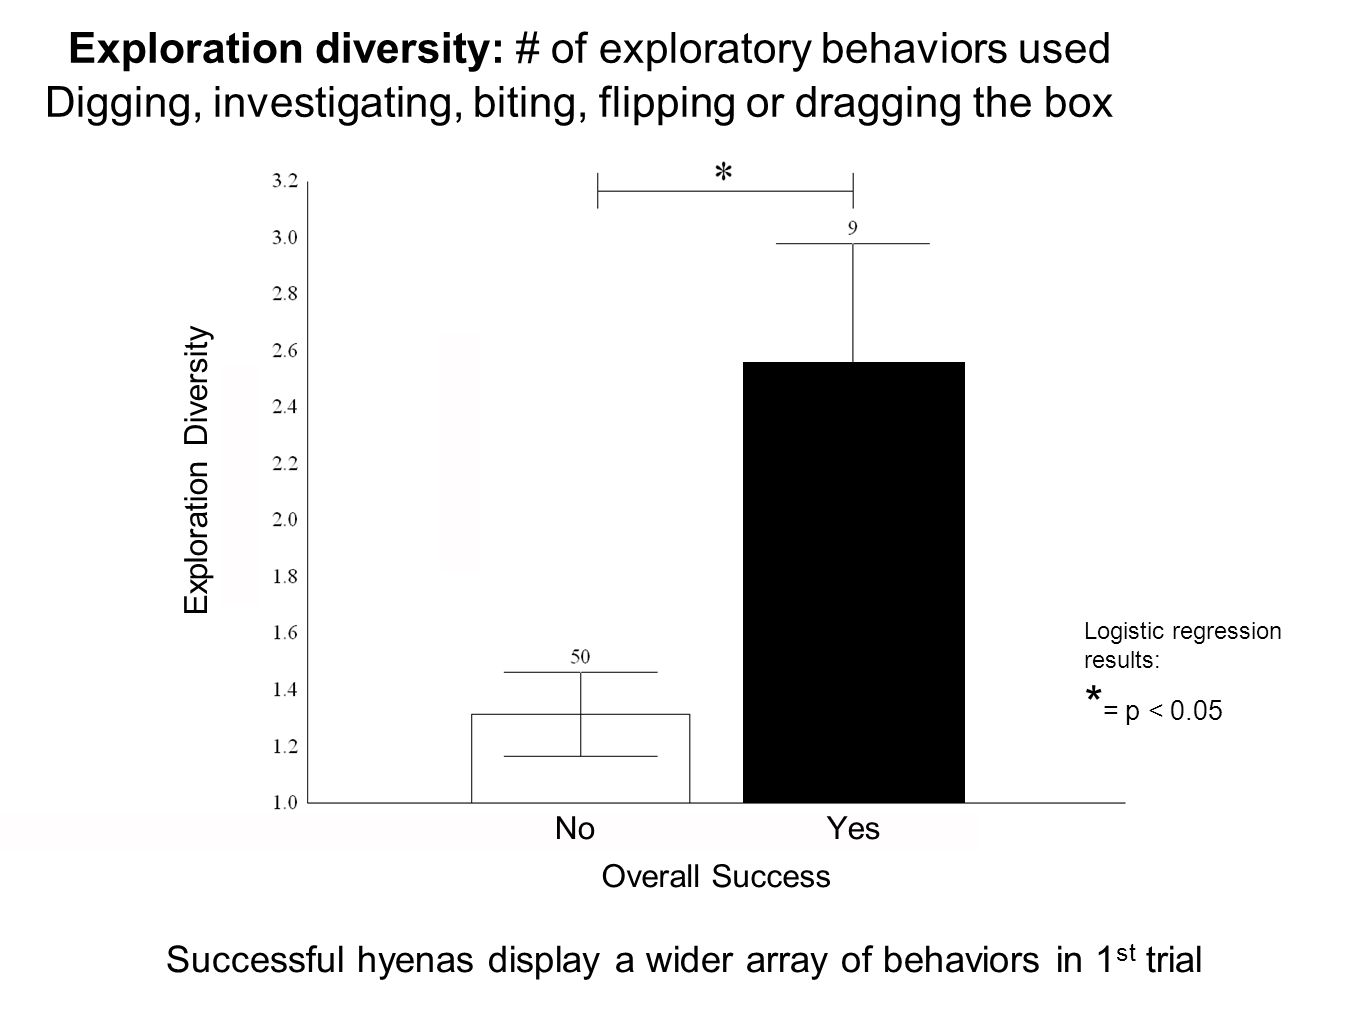 Overall Success YesNo Exploration Diversity Successful hyenas display a wider array of behaviors in 1 st trial Logistic regression results: * = p < 0.05 Exploration diversity: # of exploratory behaviors used Digging, investigating, biting, flipping or dragging the box